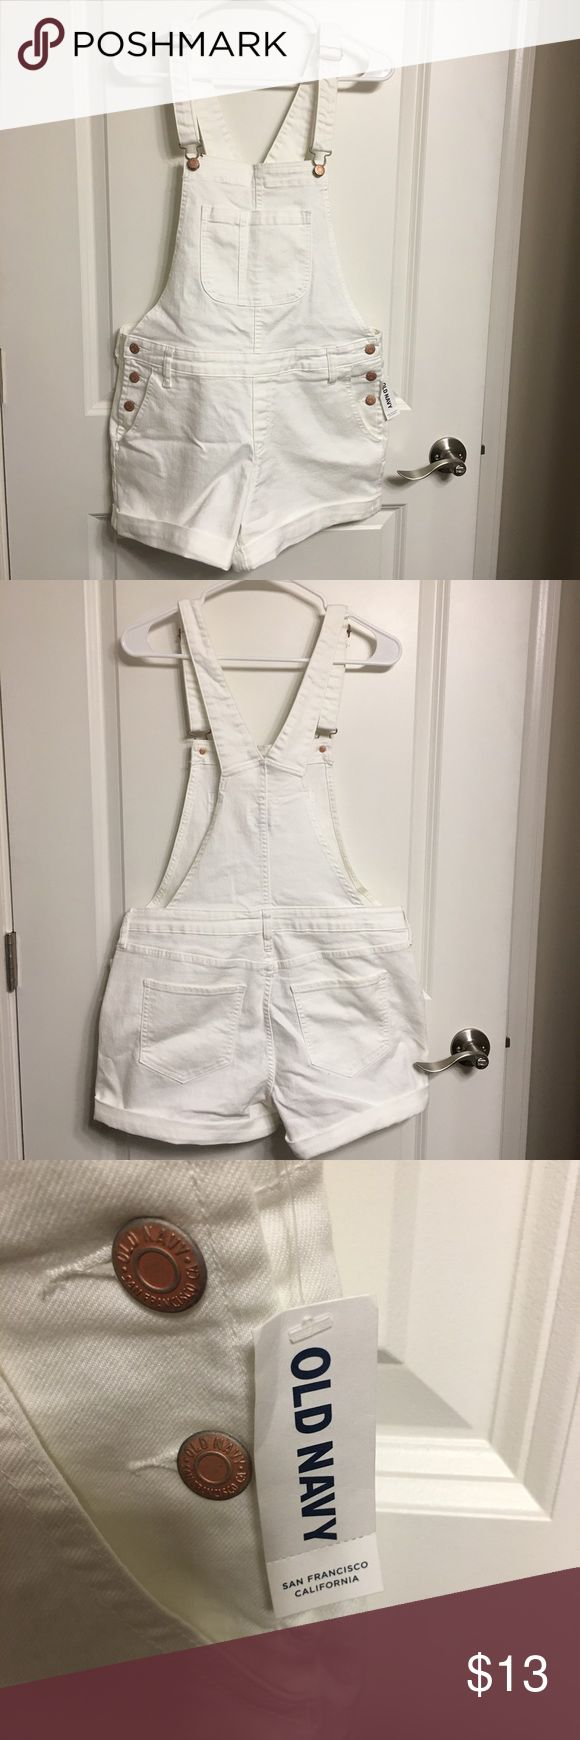 Old Navy White Overalls (New with tags) Perfect for summer! New with tags. Old Navy Pants Jumpsuits & Rompers